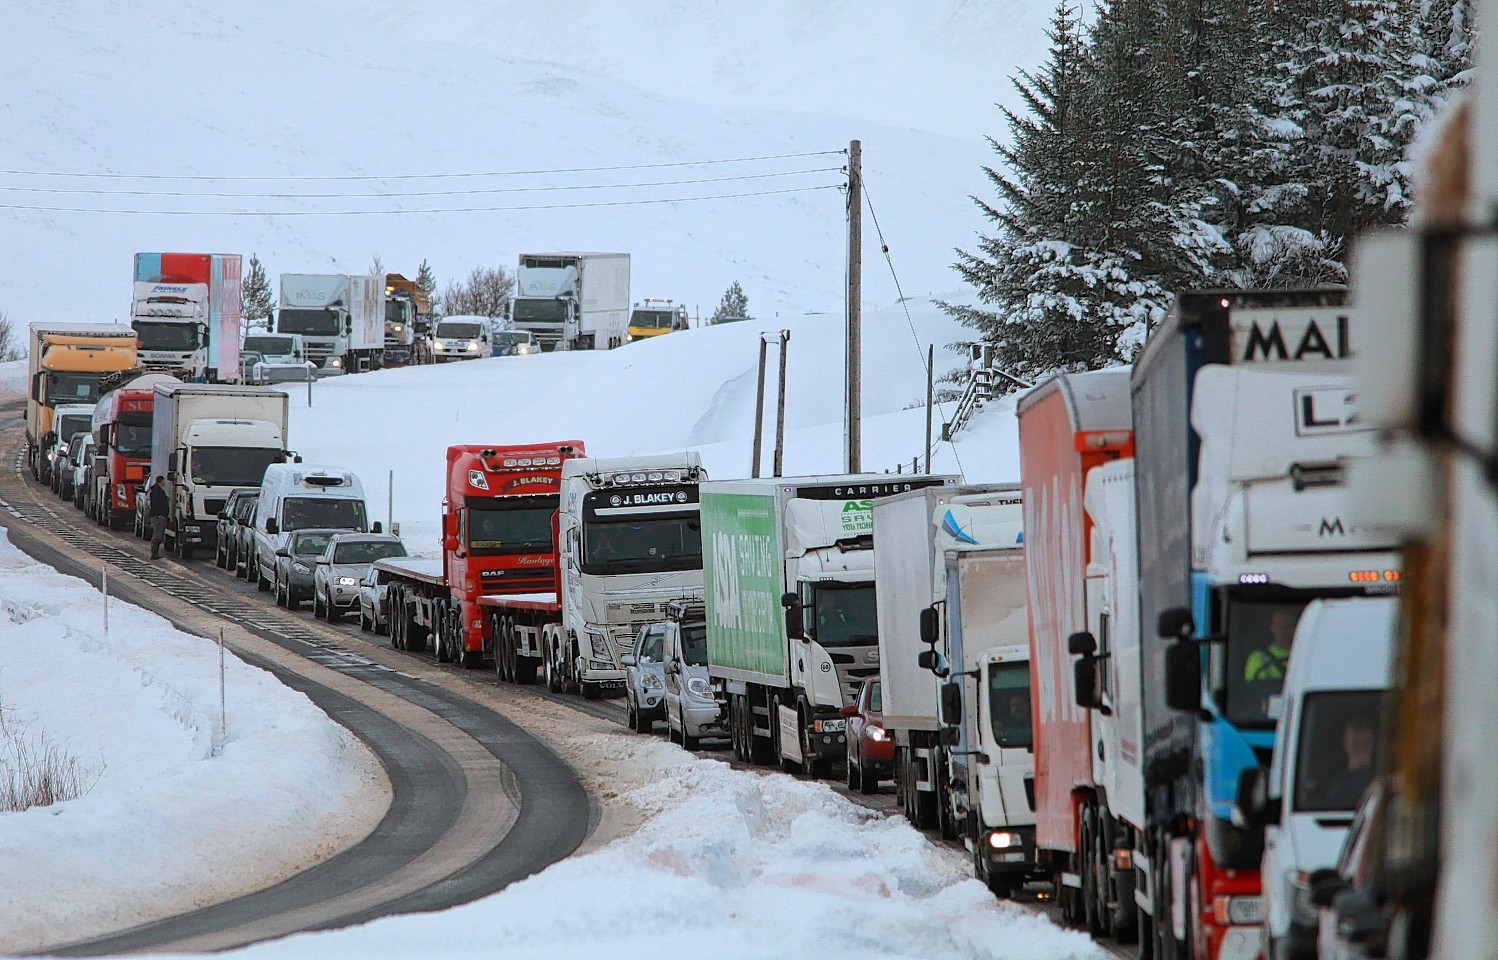 Drivers on the A9 were hit with serious delays due to today's snow